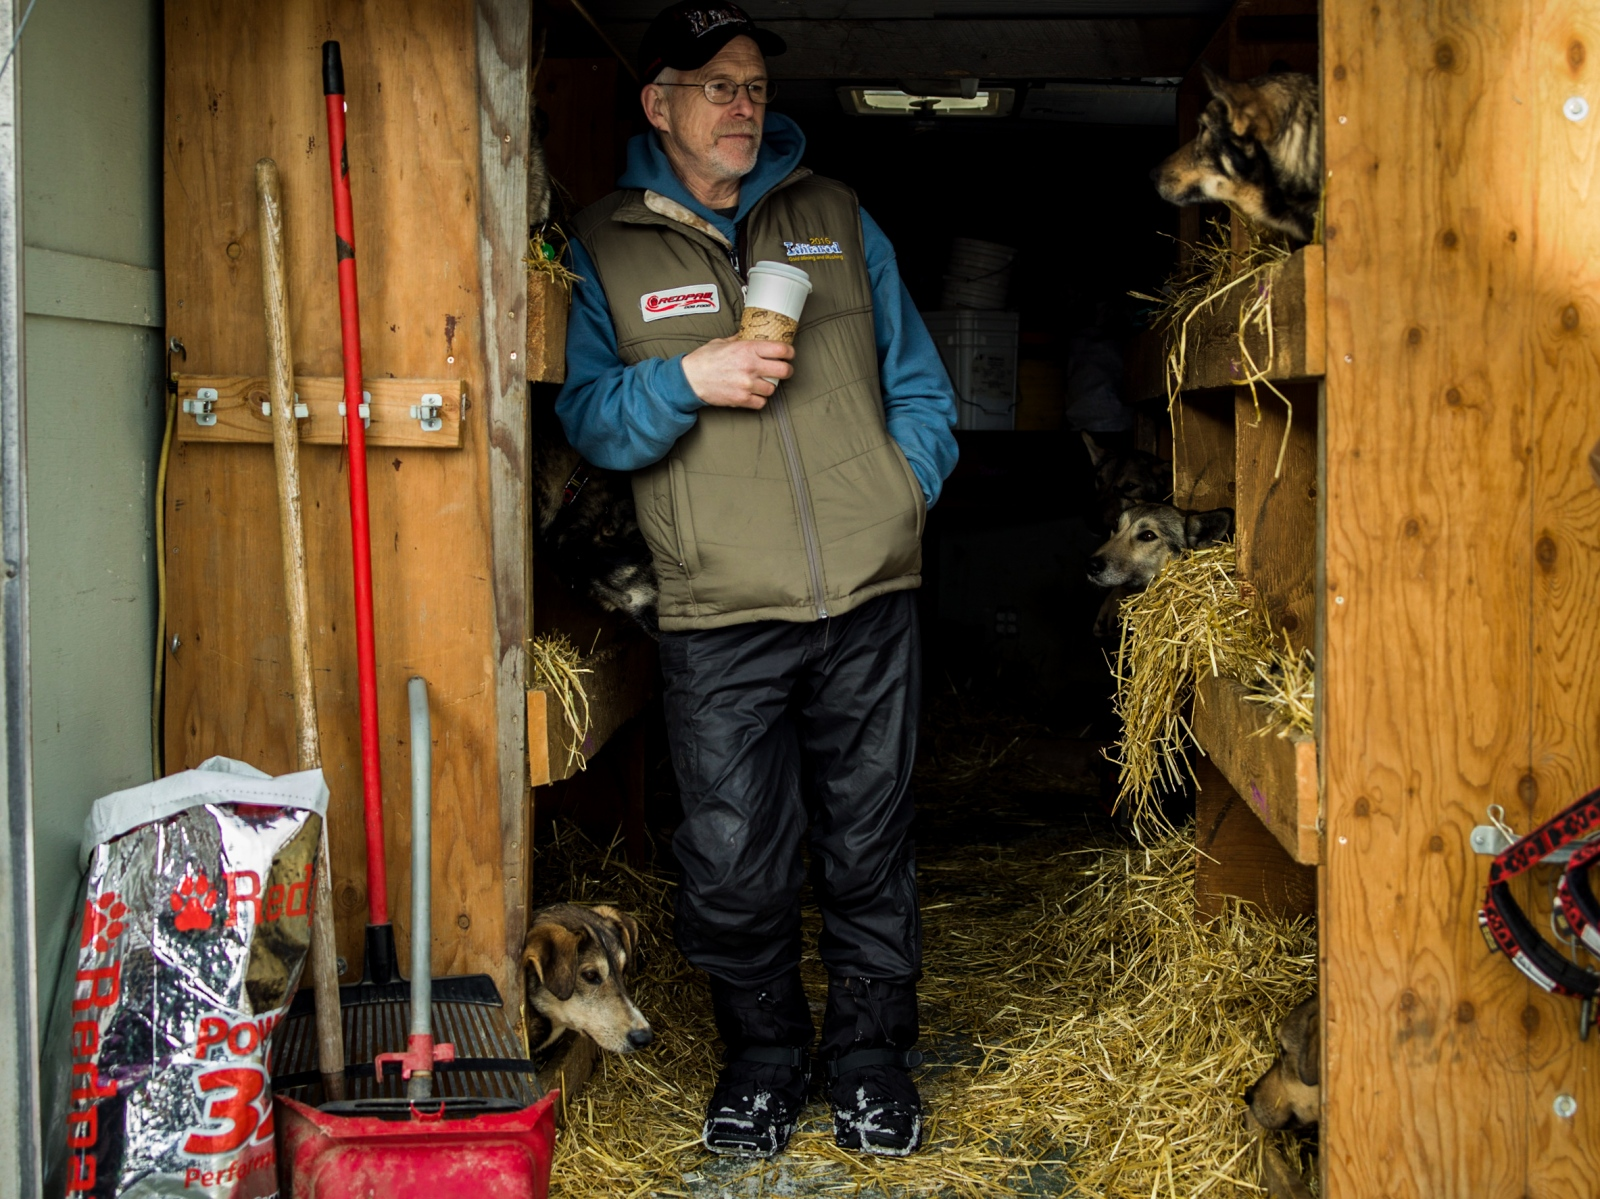 Four-time Iditarod champion Jeff King stands in his trailer with his dogs at the 2016 ceremonial start in downtown Anchorage on March 5, 2016.